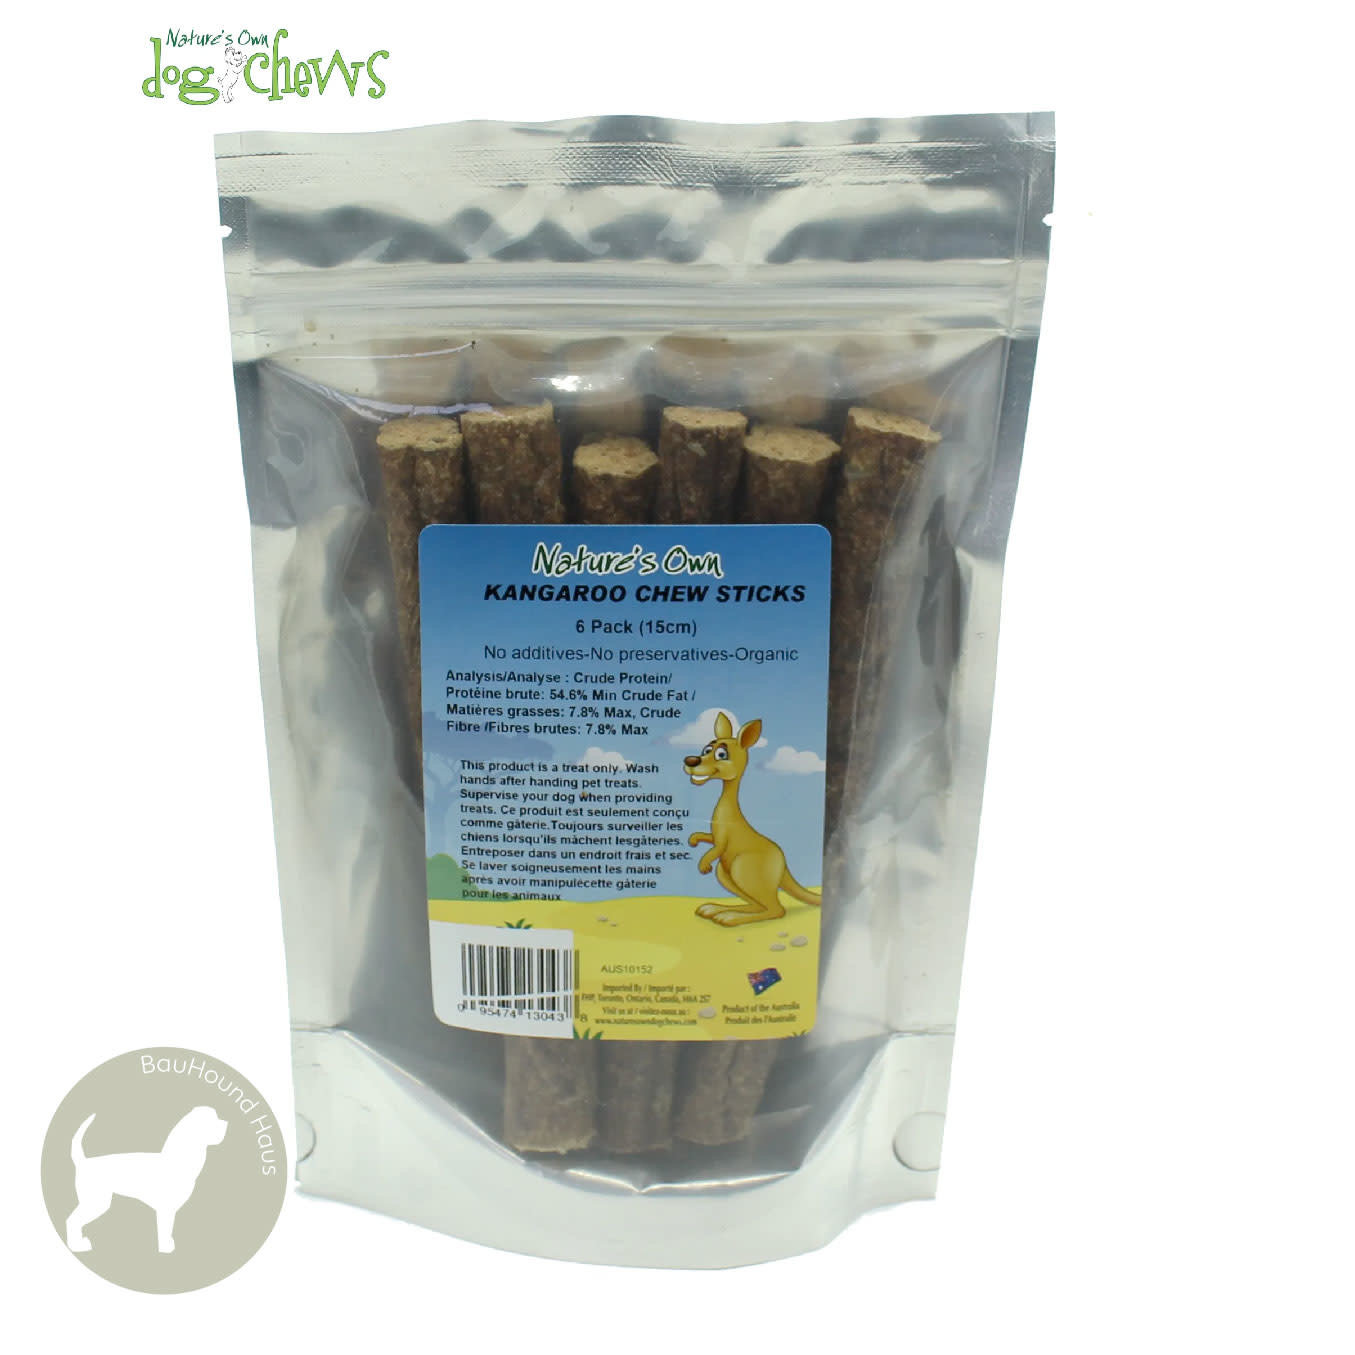 Nature's Own Nature's Own Kangaroo Chew Sticks, 6-Pack